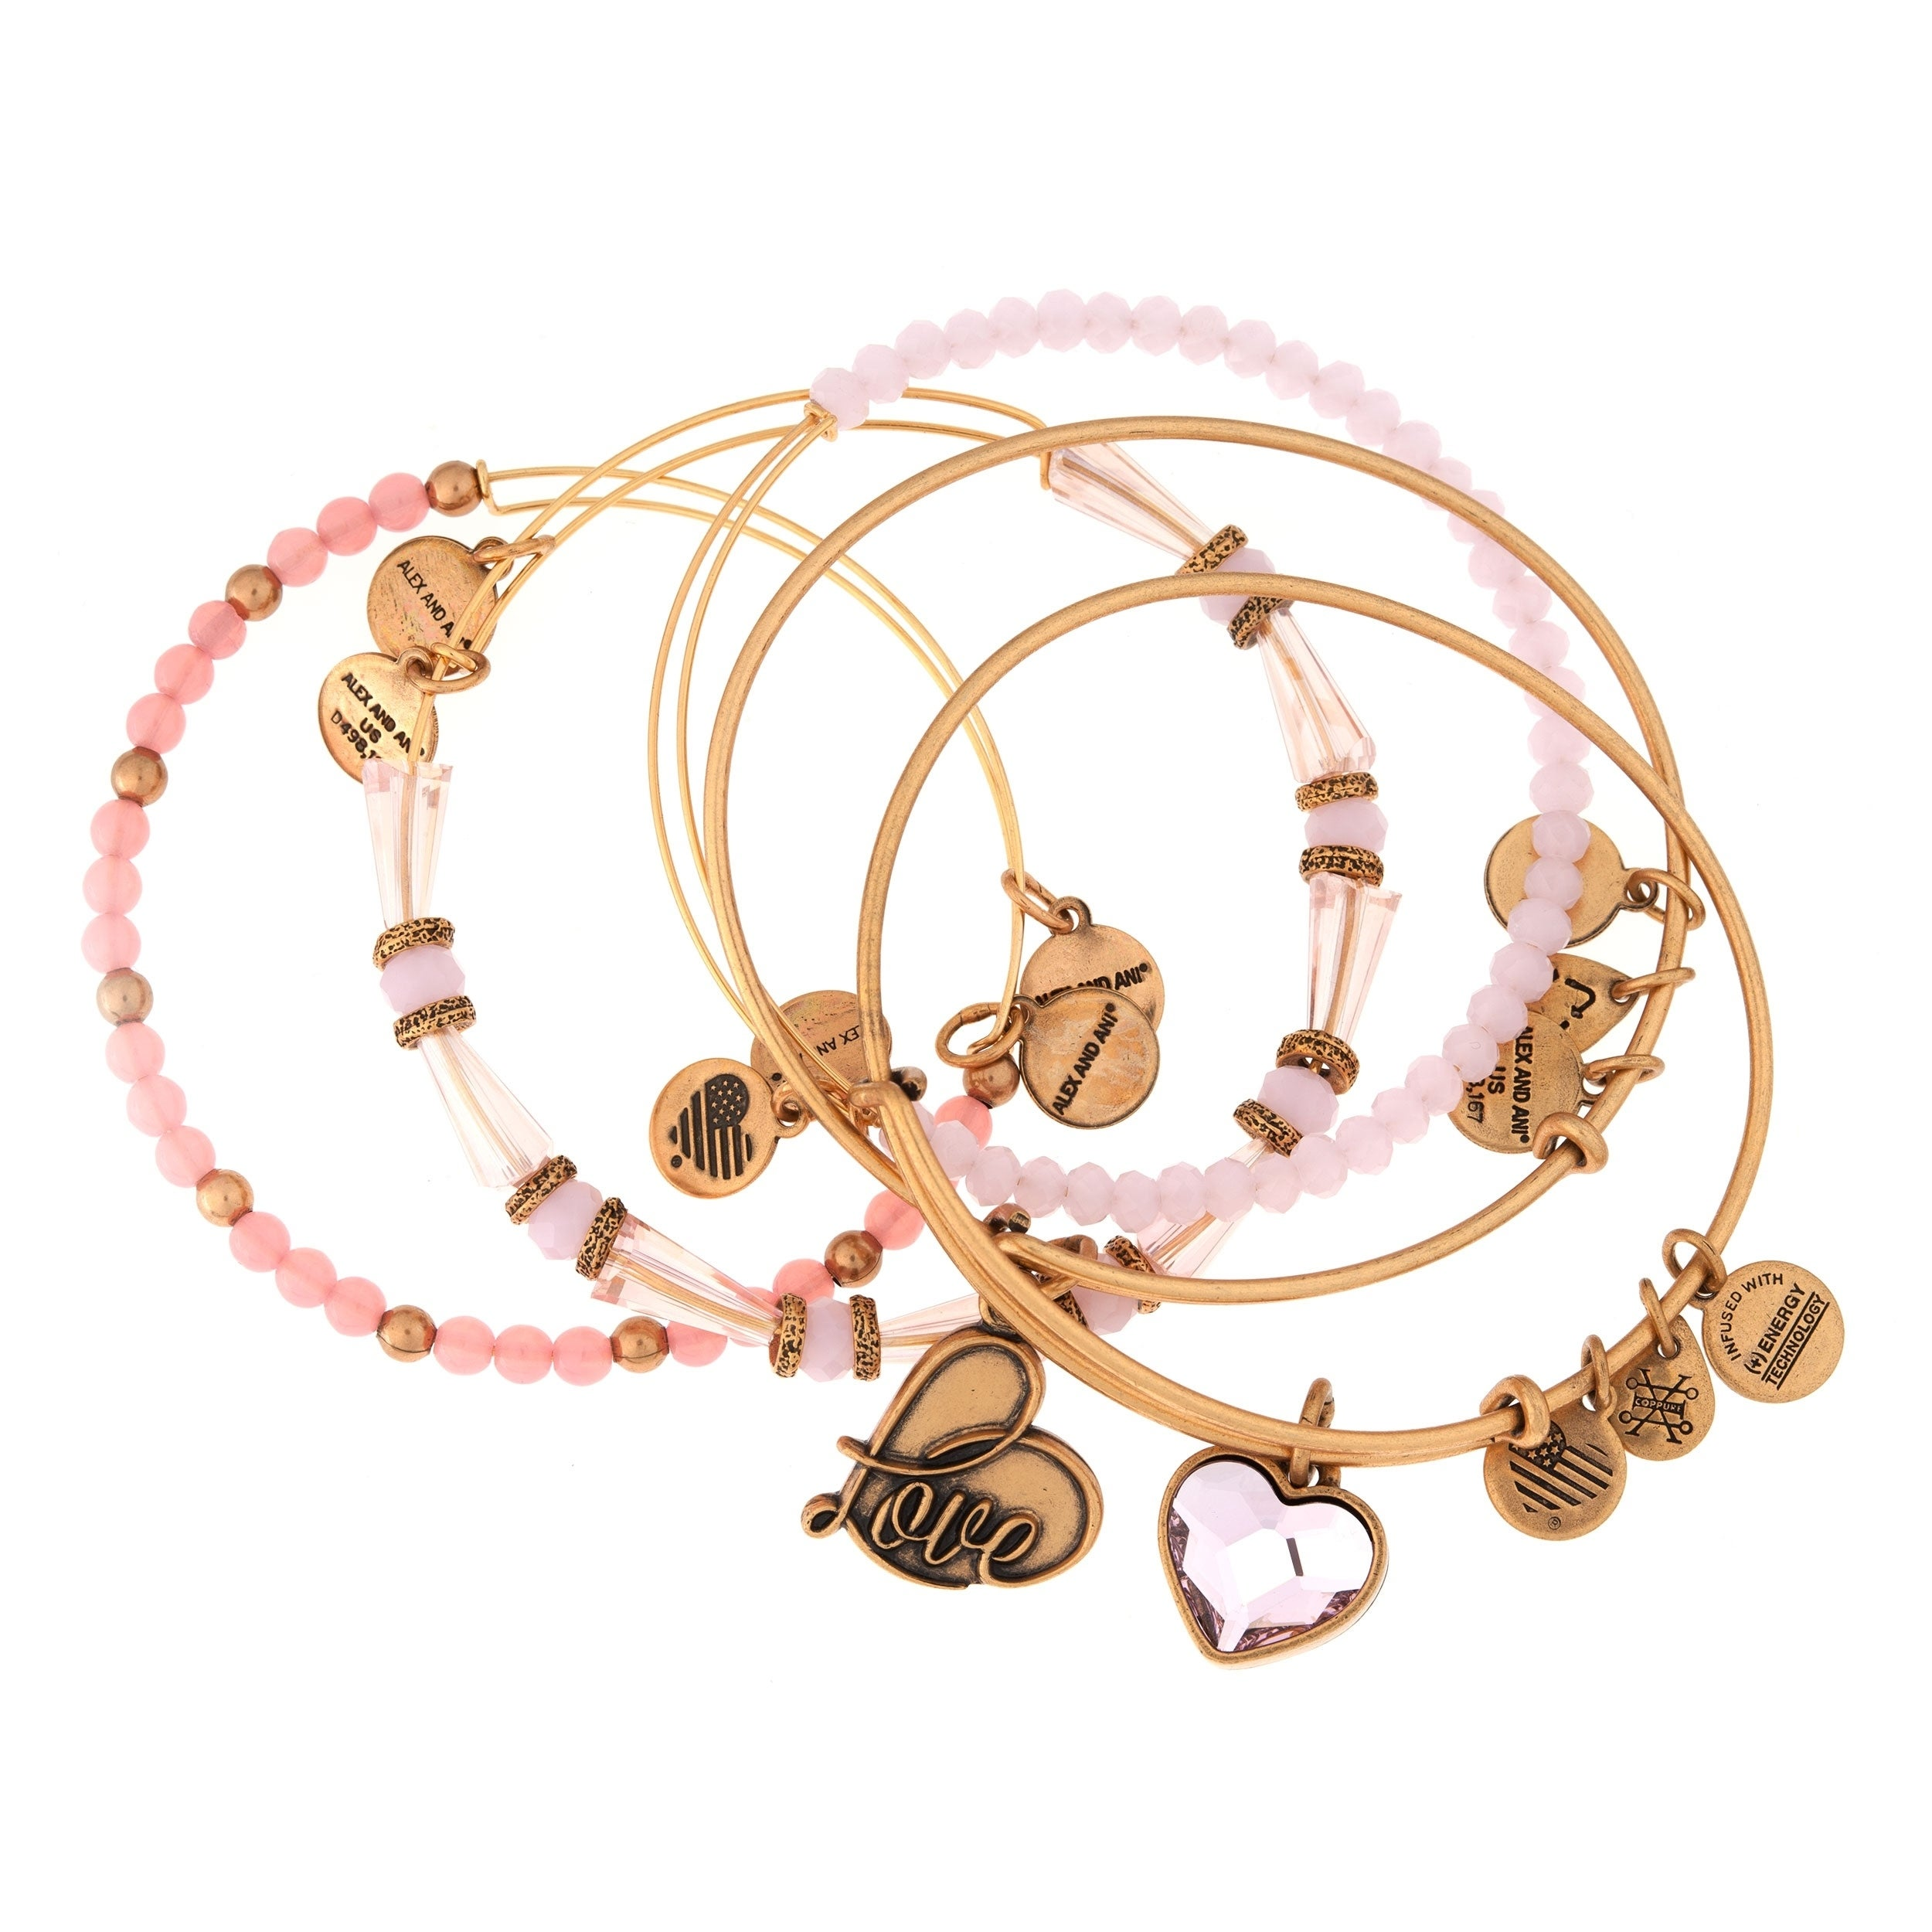 29edbc989 Shop Alex and Ani Alive With Love 5-pc Bangle Set - Pink - Free Shipping  Today - Overstock - 19893651